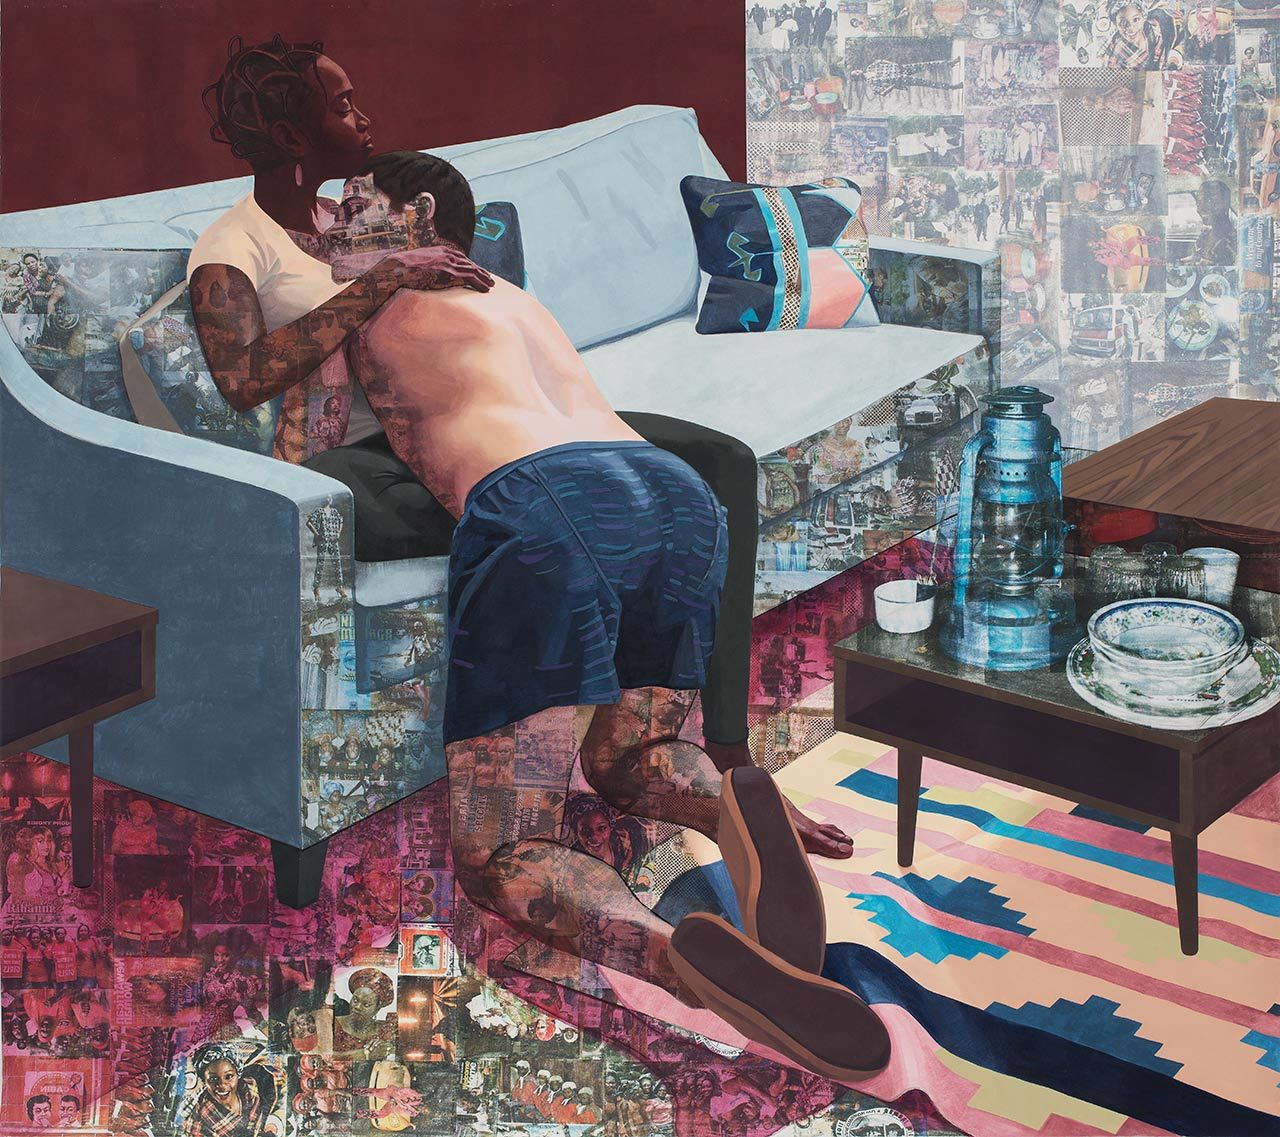 Njideka Akunyili Crosby, Ike Ya, 2016. Acrylic, transfers, colored pencil, and charcoal on paper, 84 × 99 in. (213.4 × 251.5 cm), Hammer Museum, Los Angeles. Purchase.